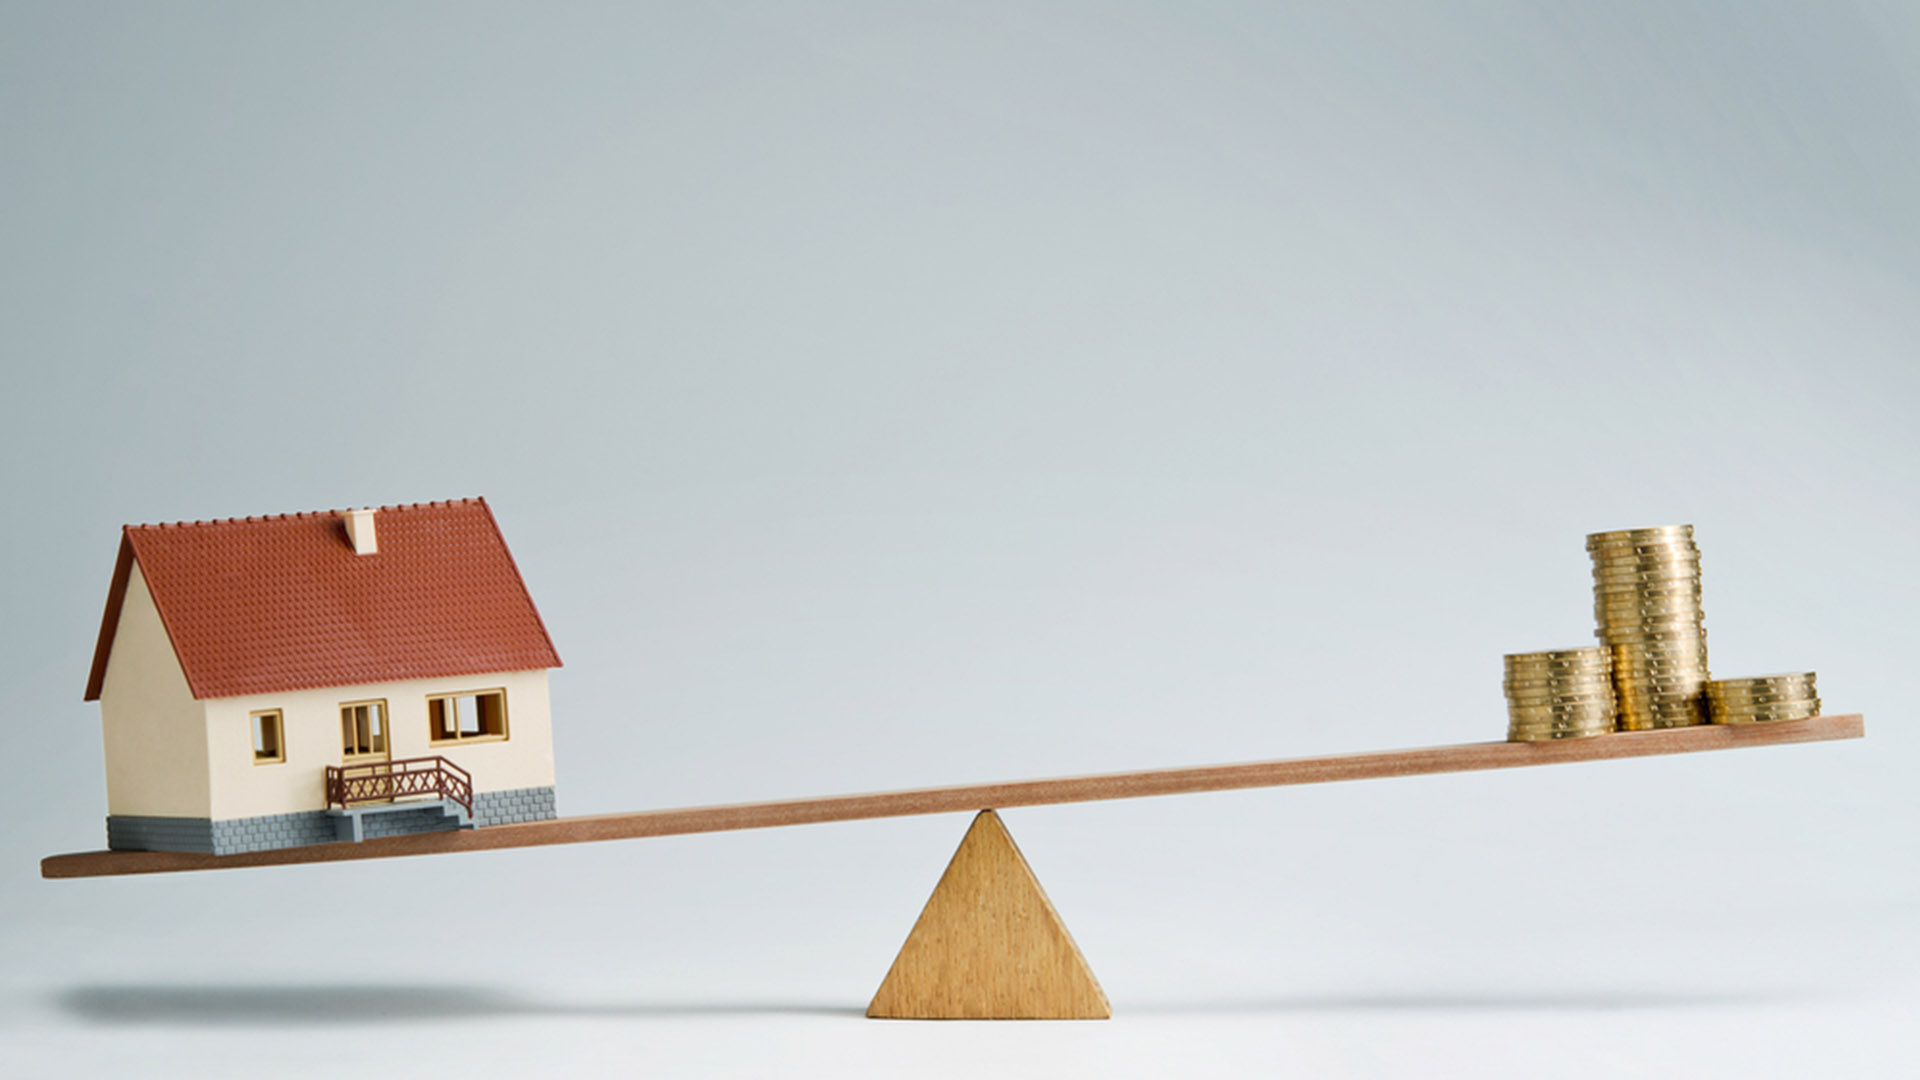 Lower Housing Prices Needed, Not Just Rate Cuts, Say Experts